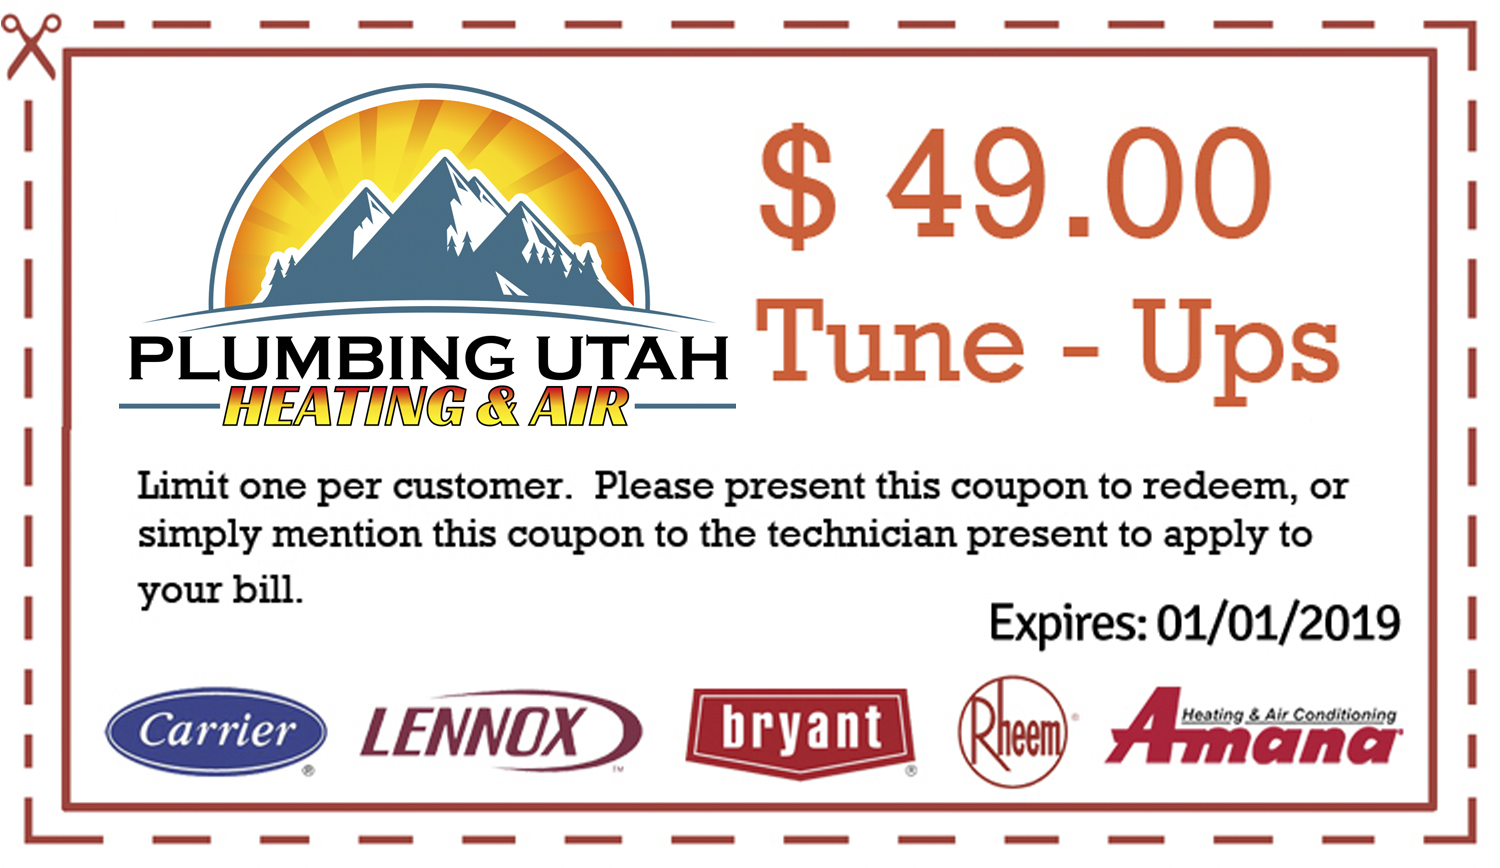 plumbing-utah-heating-air-furnace-tune-up-final